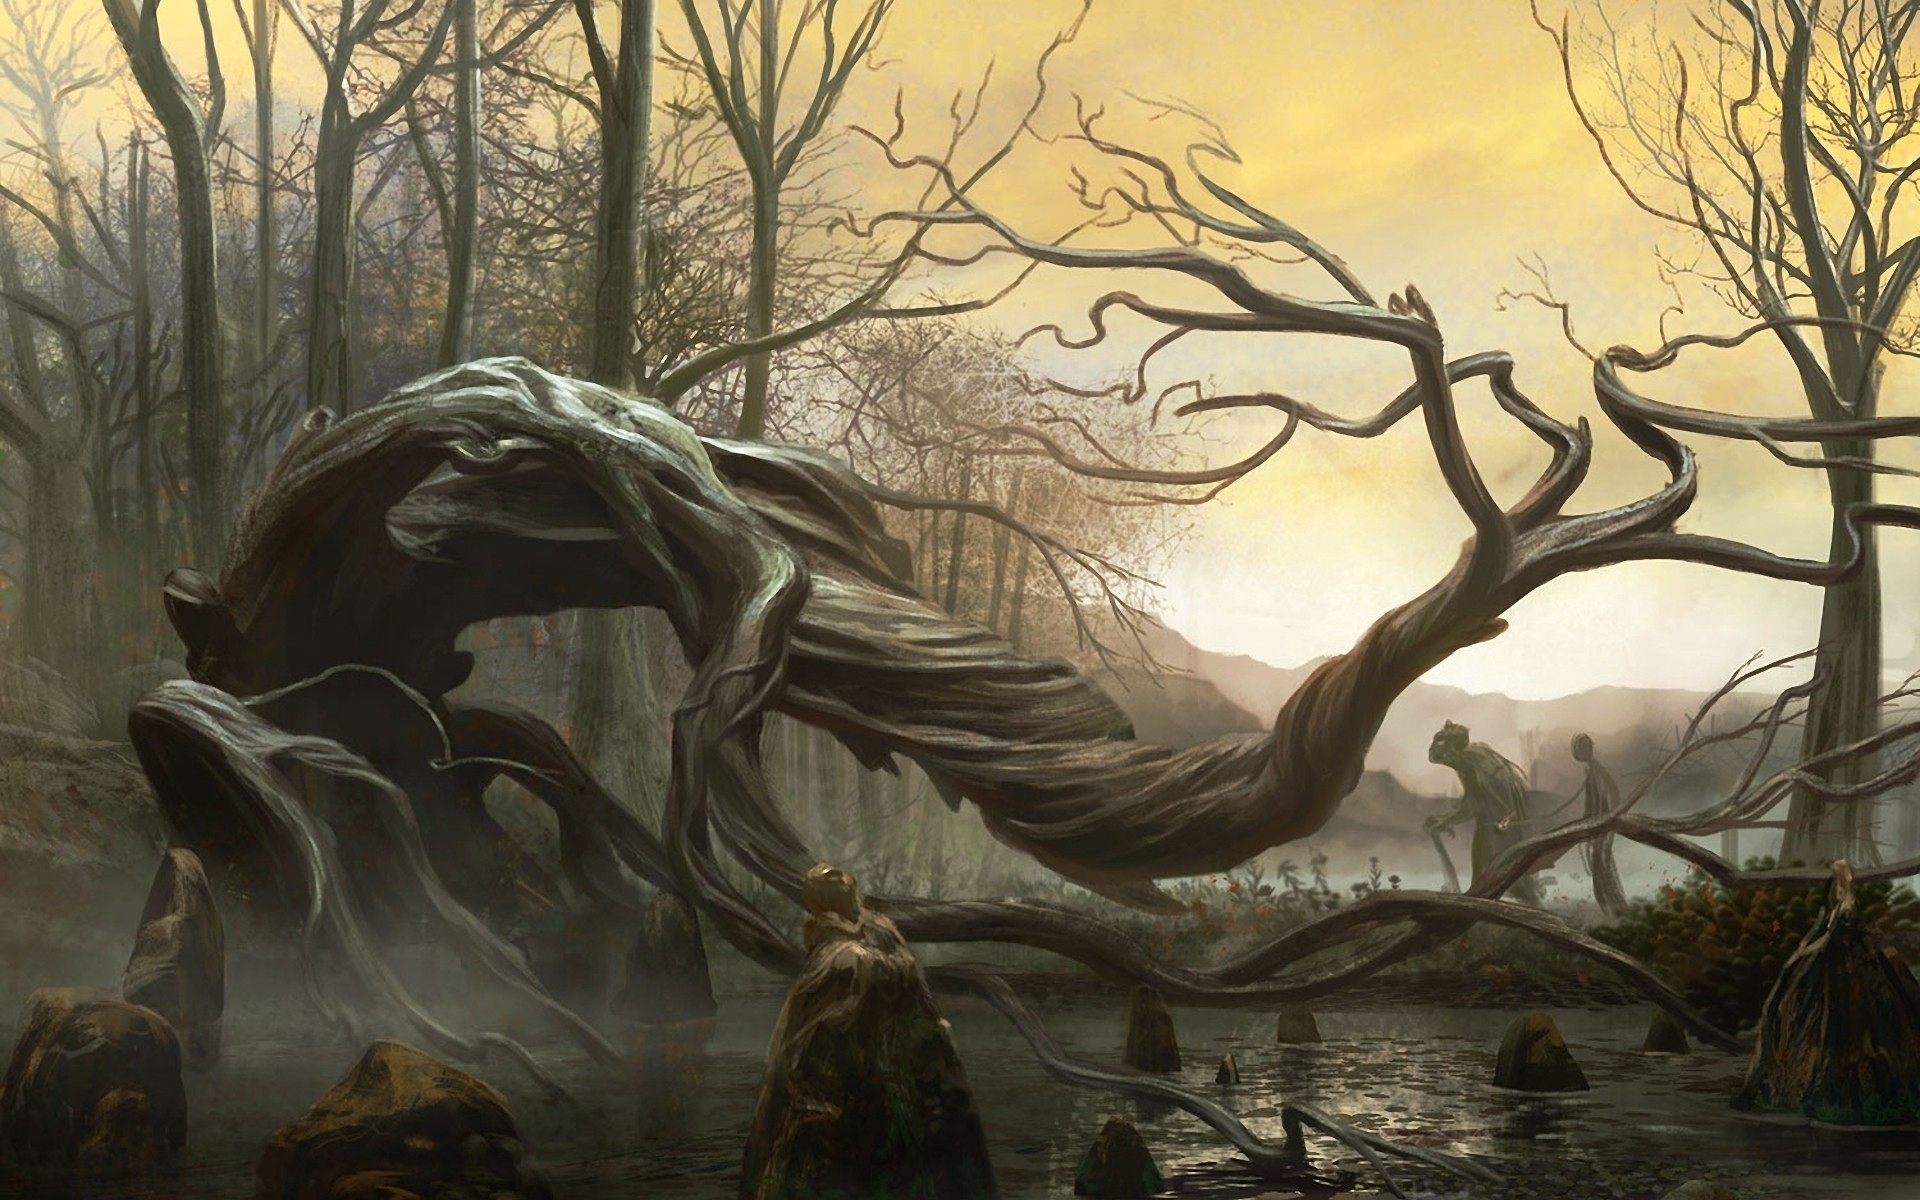 Beautiful Wallpaper Horse Creepy - fantasy-dark-cg-digital-art-spooky-landscapes-creepy-trees-hd-wallpapers  Pic_33308.jpg